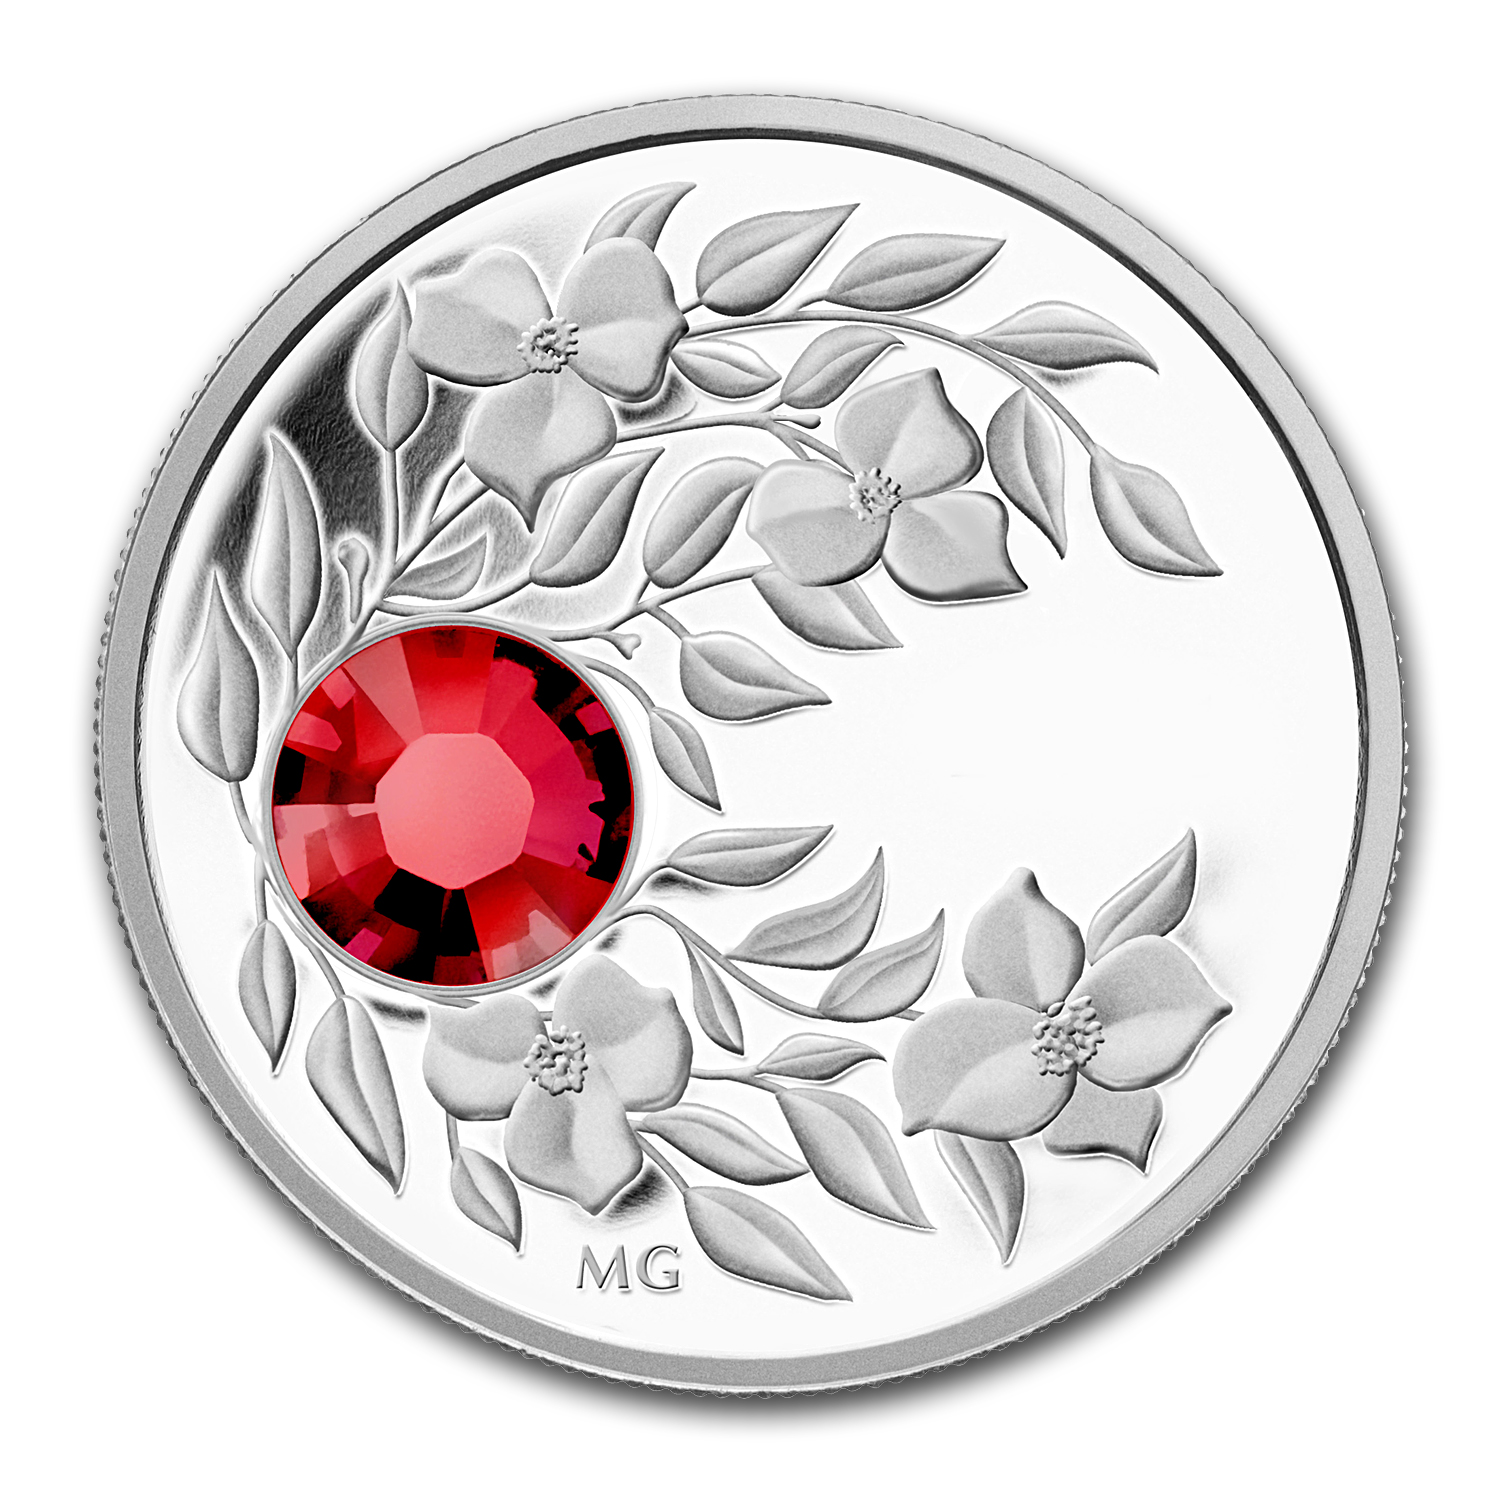 2012 Canada 1/4 oz Silver $3 Birthstone Coin July Ruby